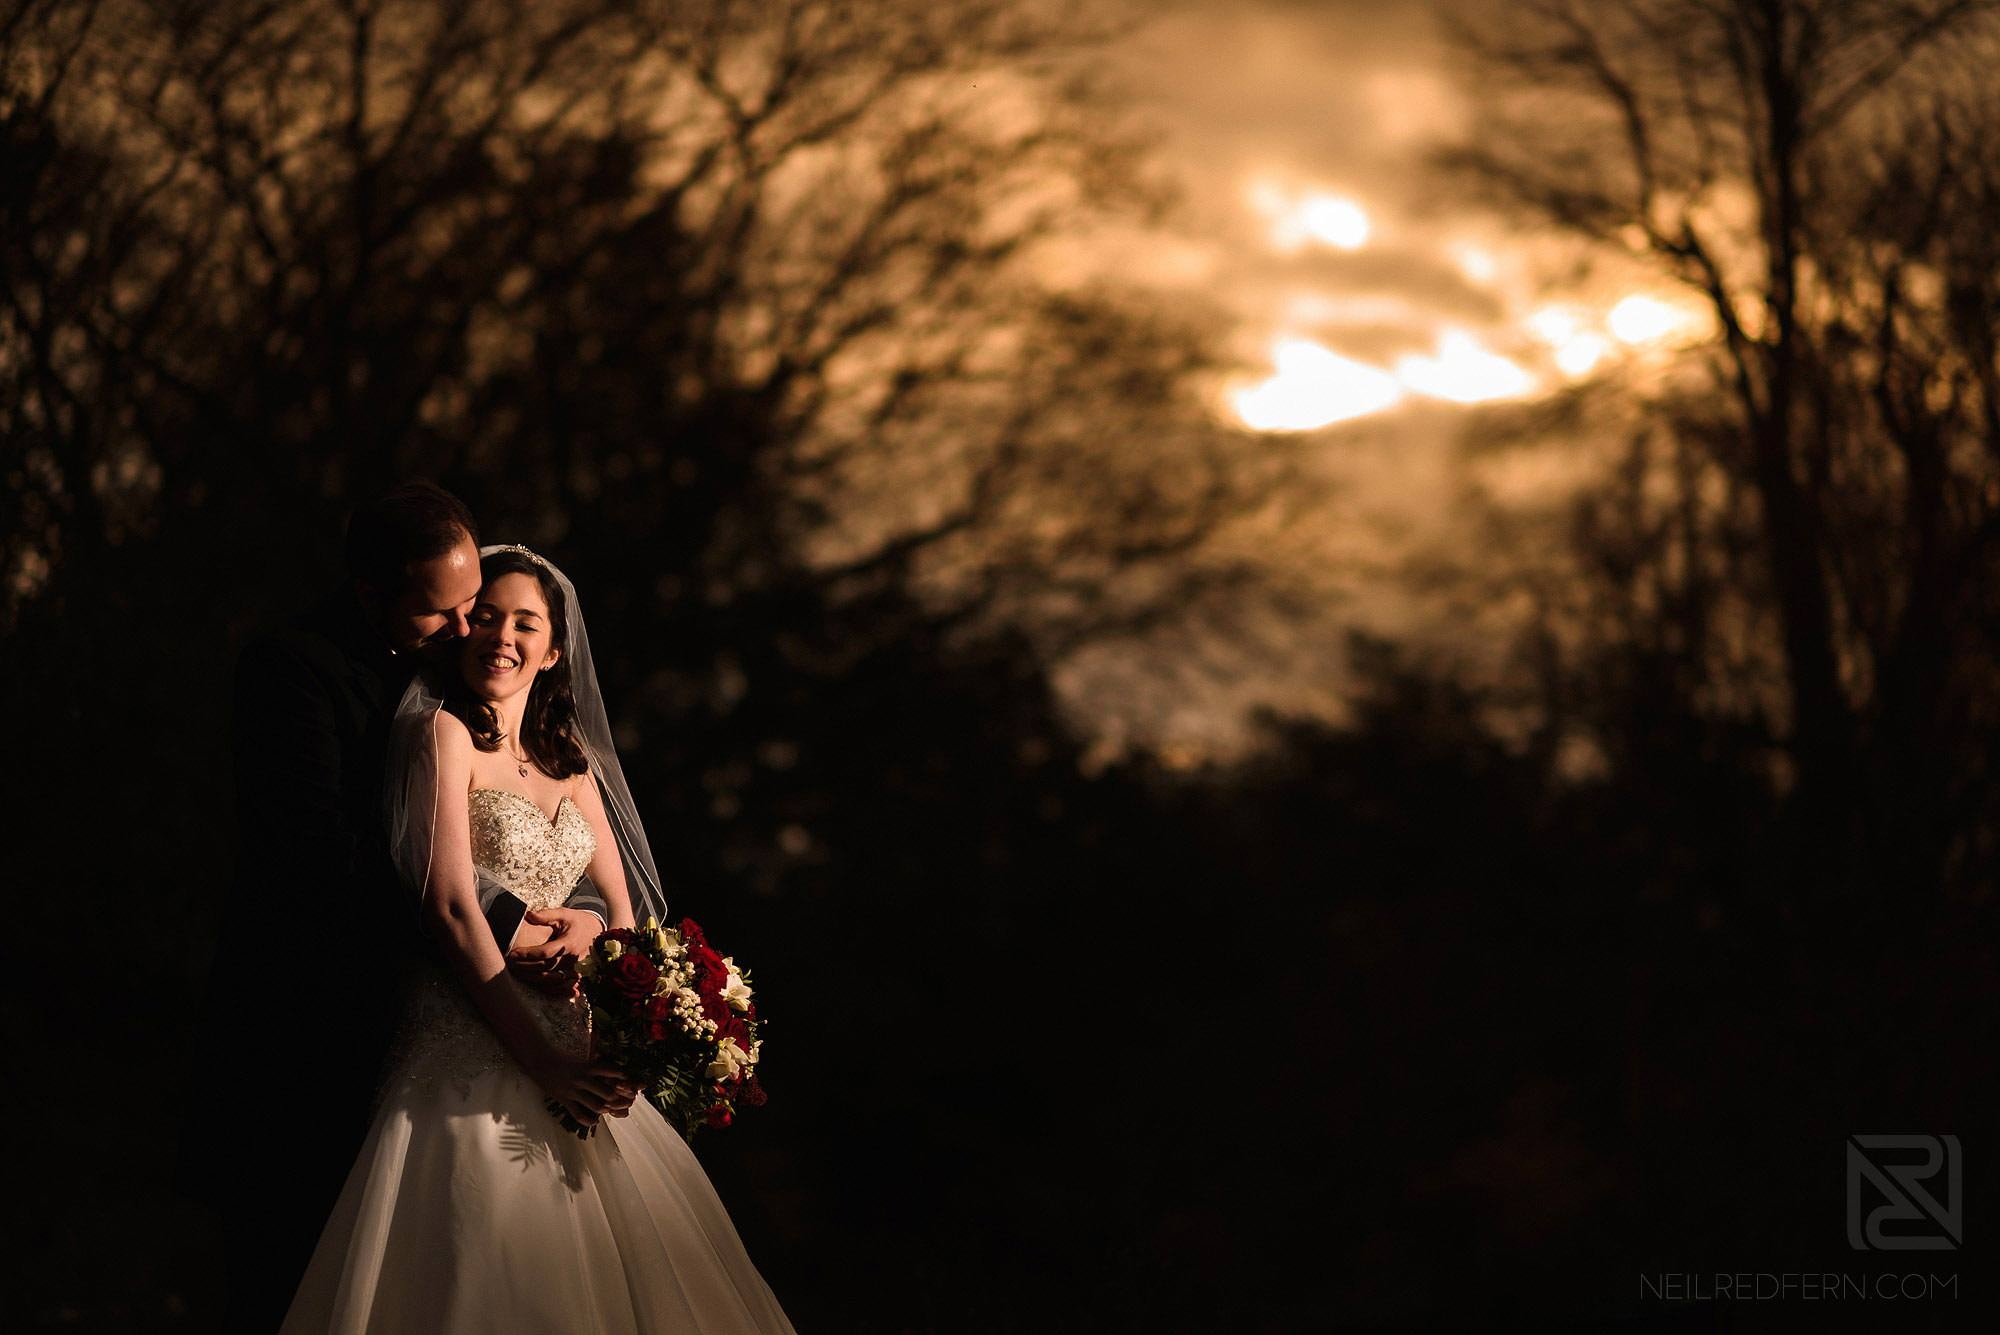 evening sunset photograph of bride and groom